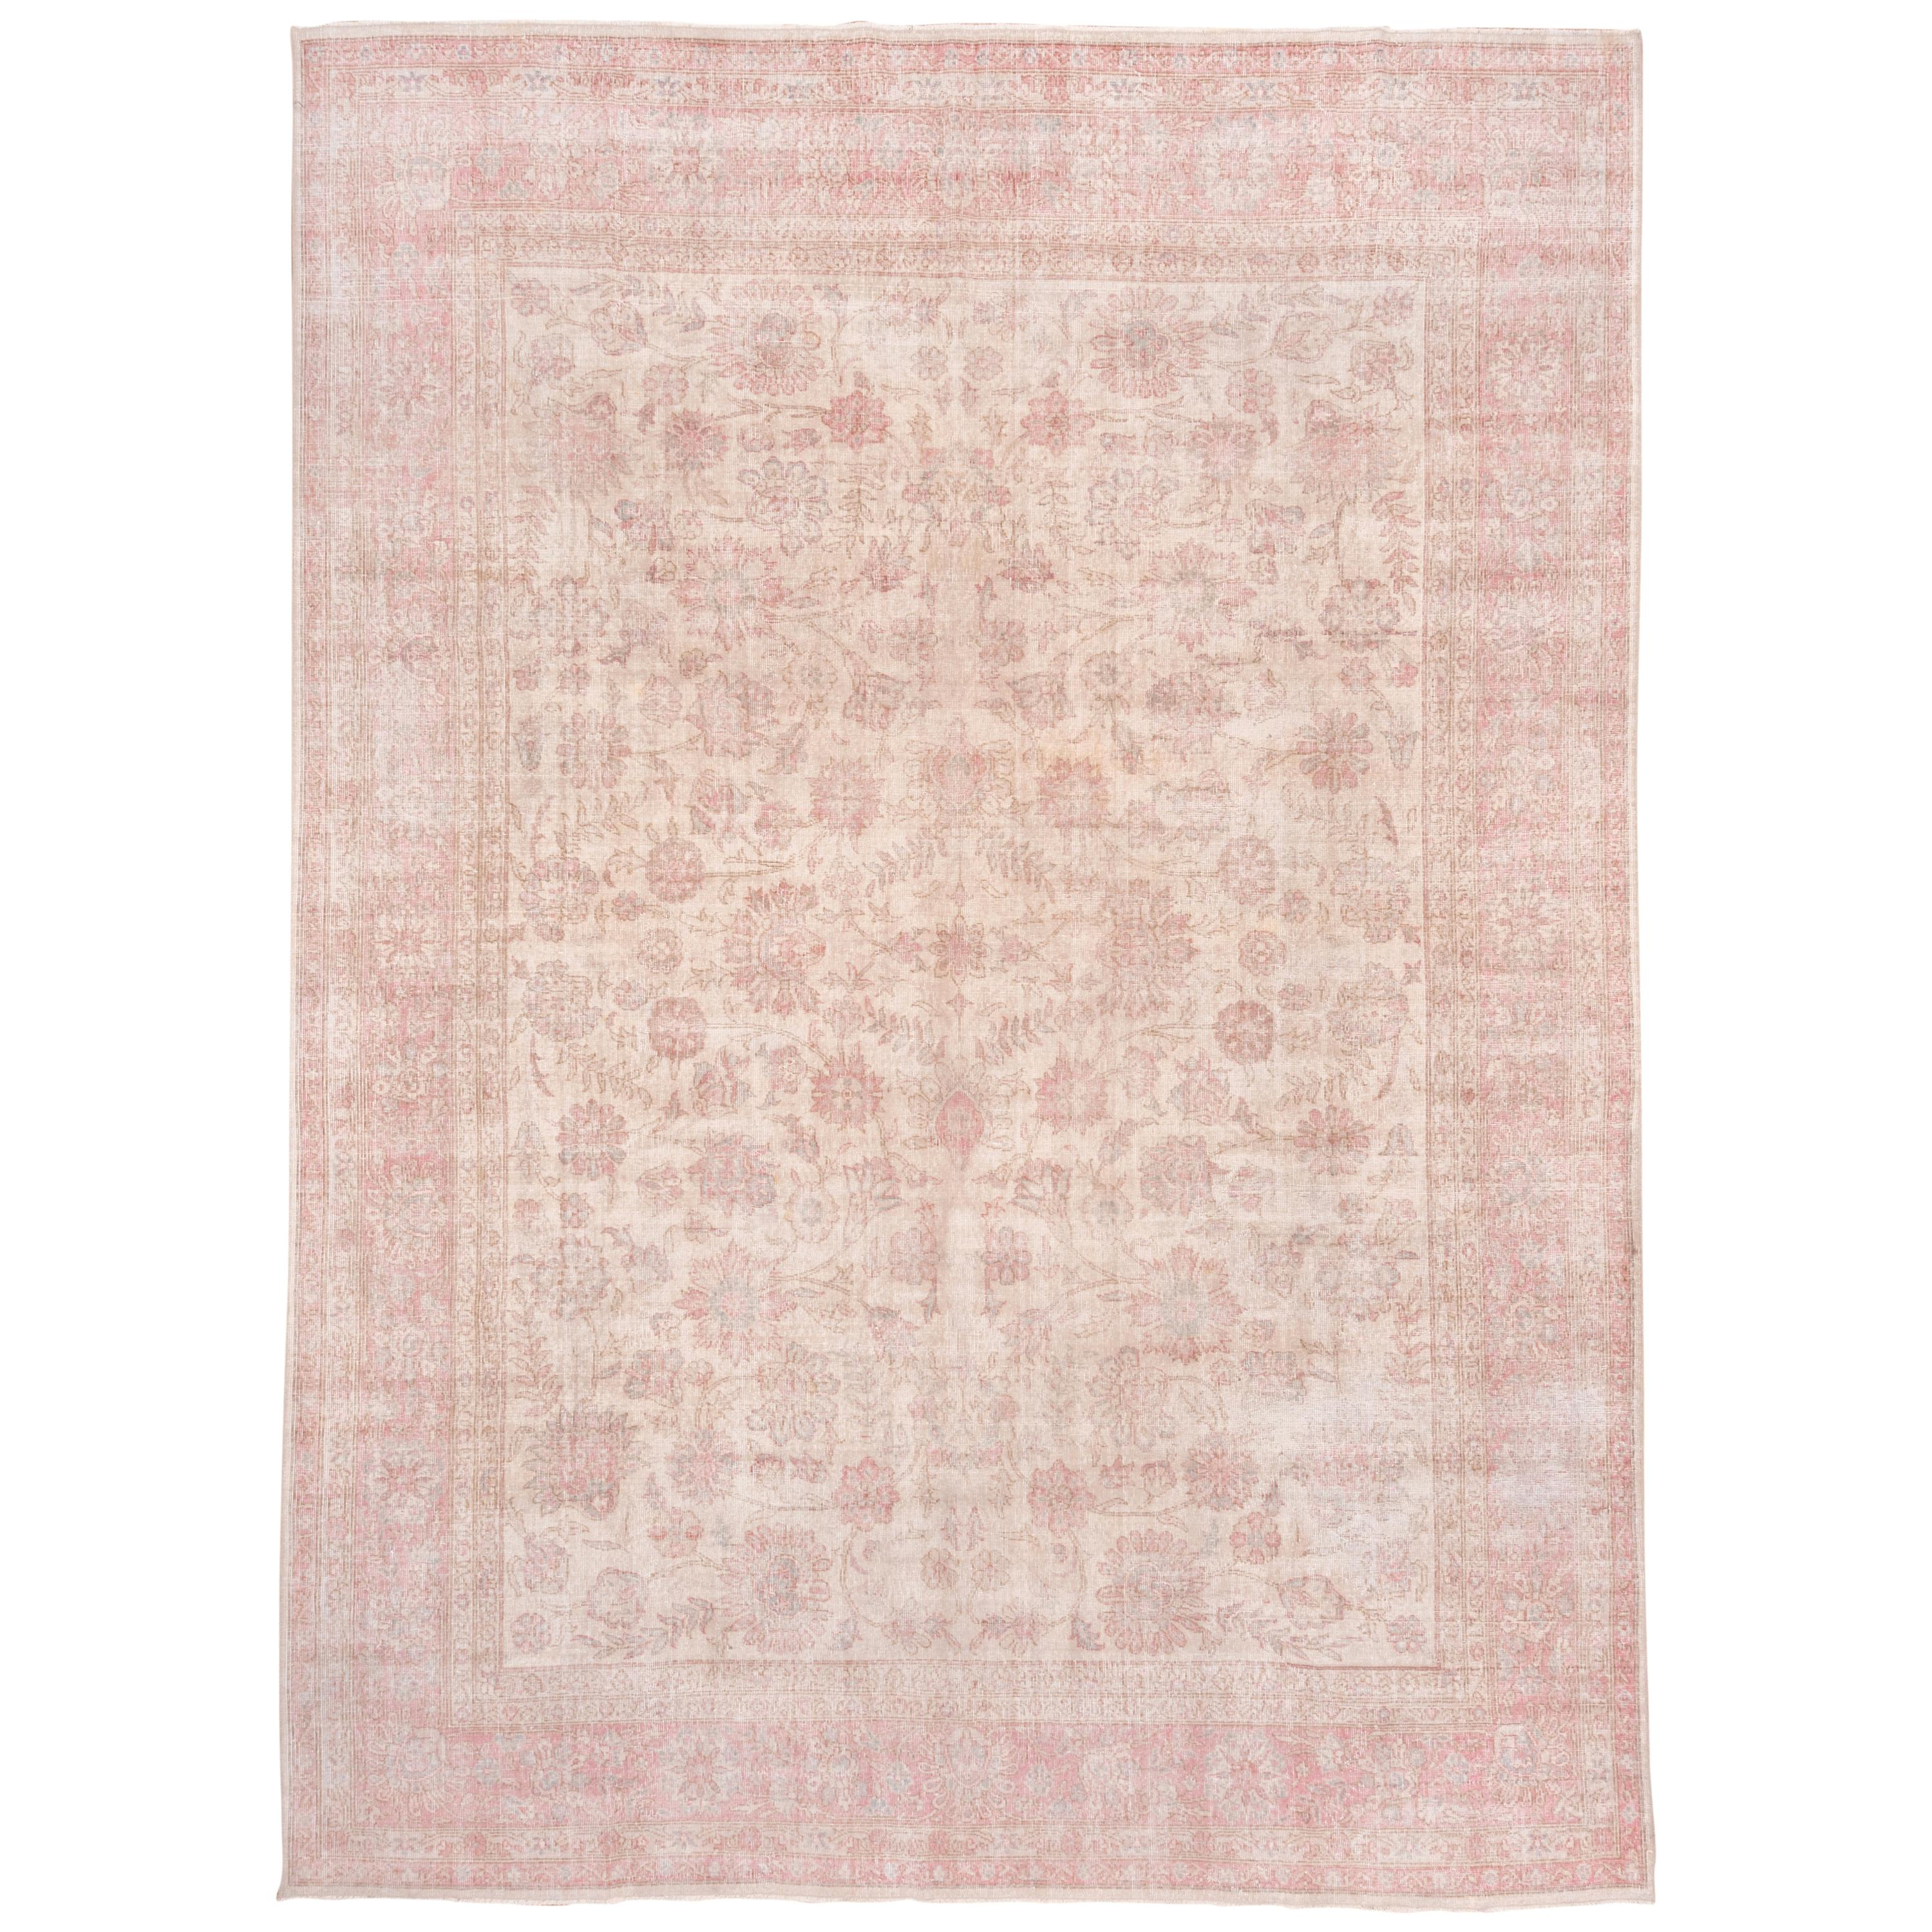 Ivory and Pink Oushak Carpet, Lightly Distressed